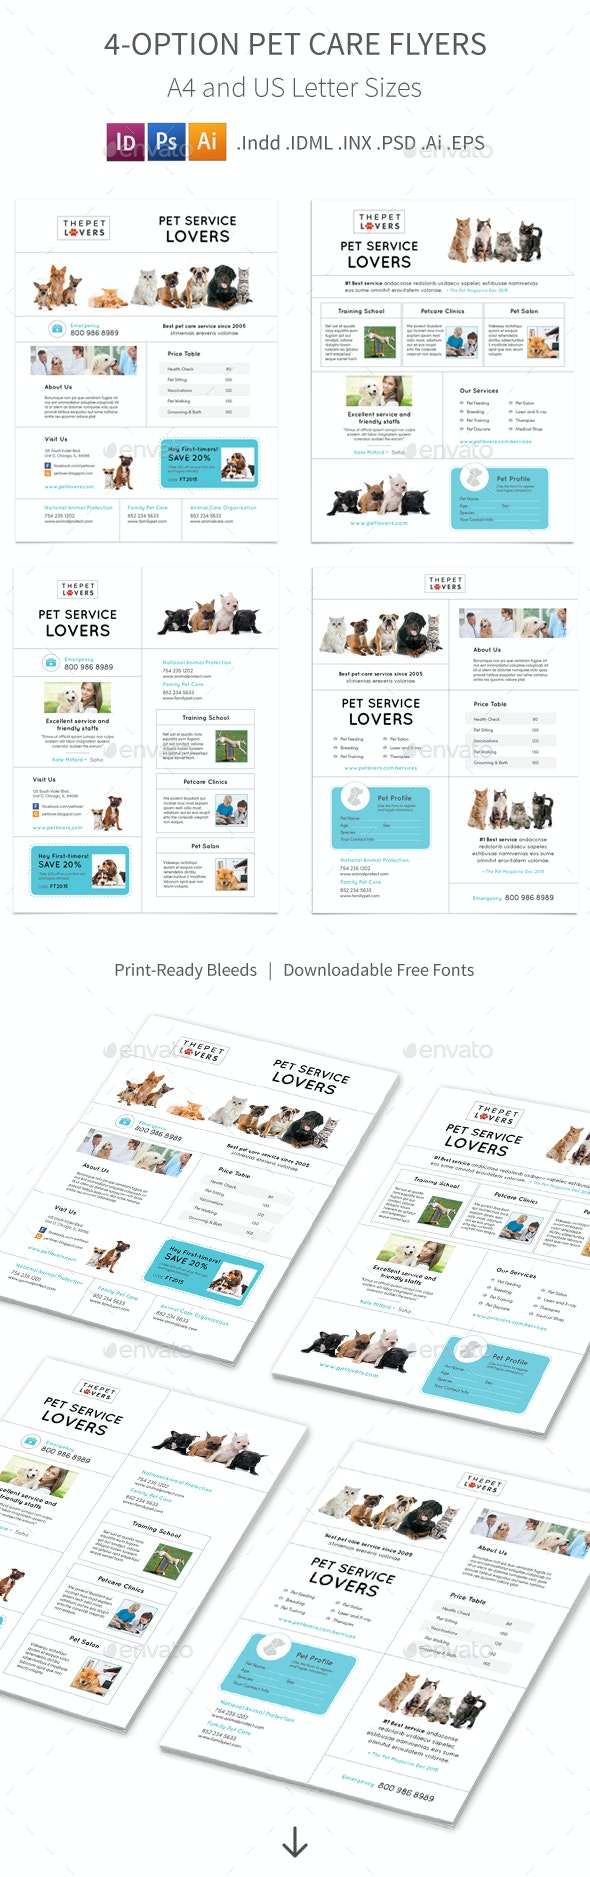 Pet Care Flyers 4 – 4 Options - Corporate Flyers